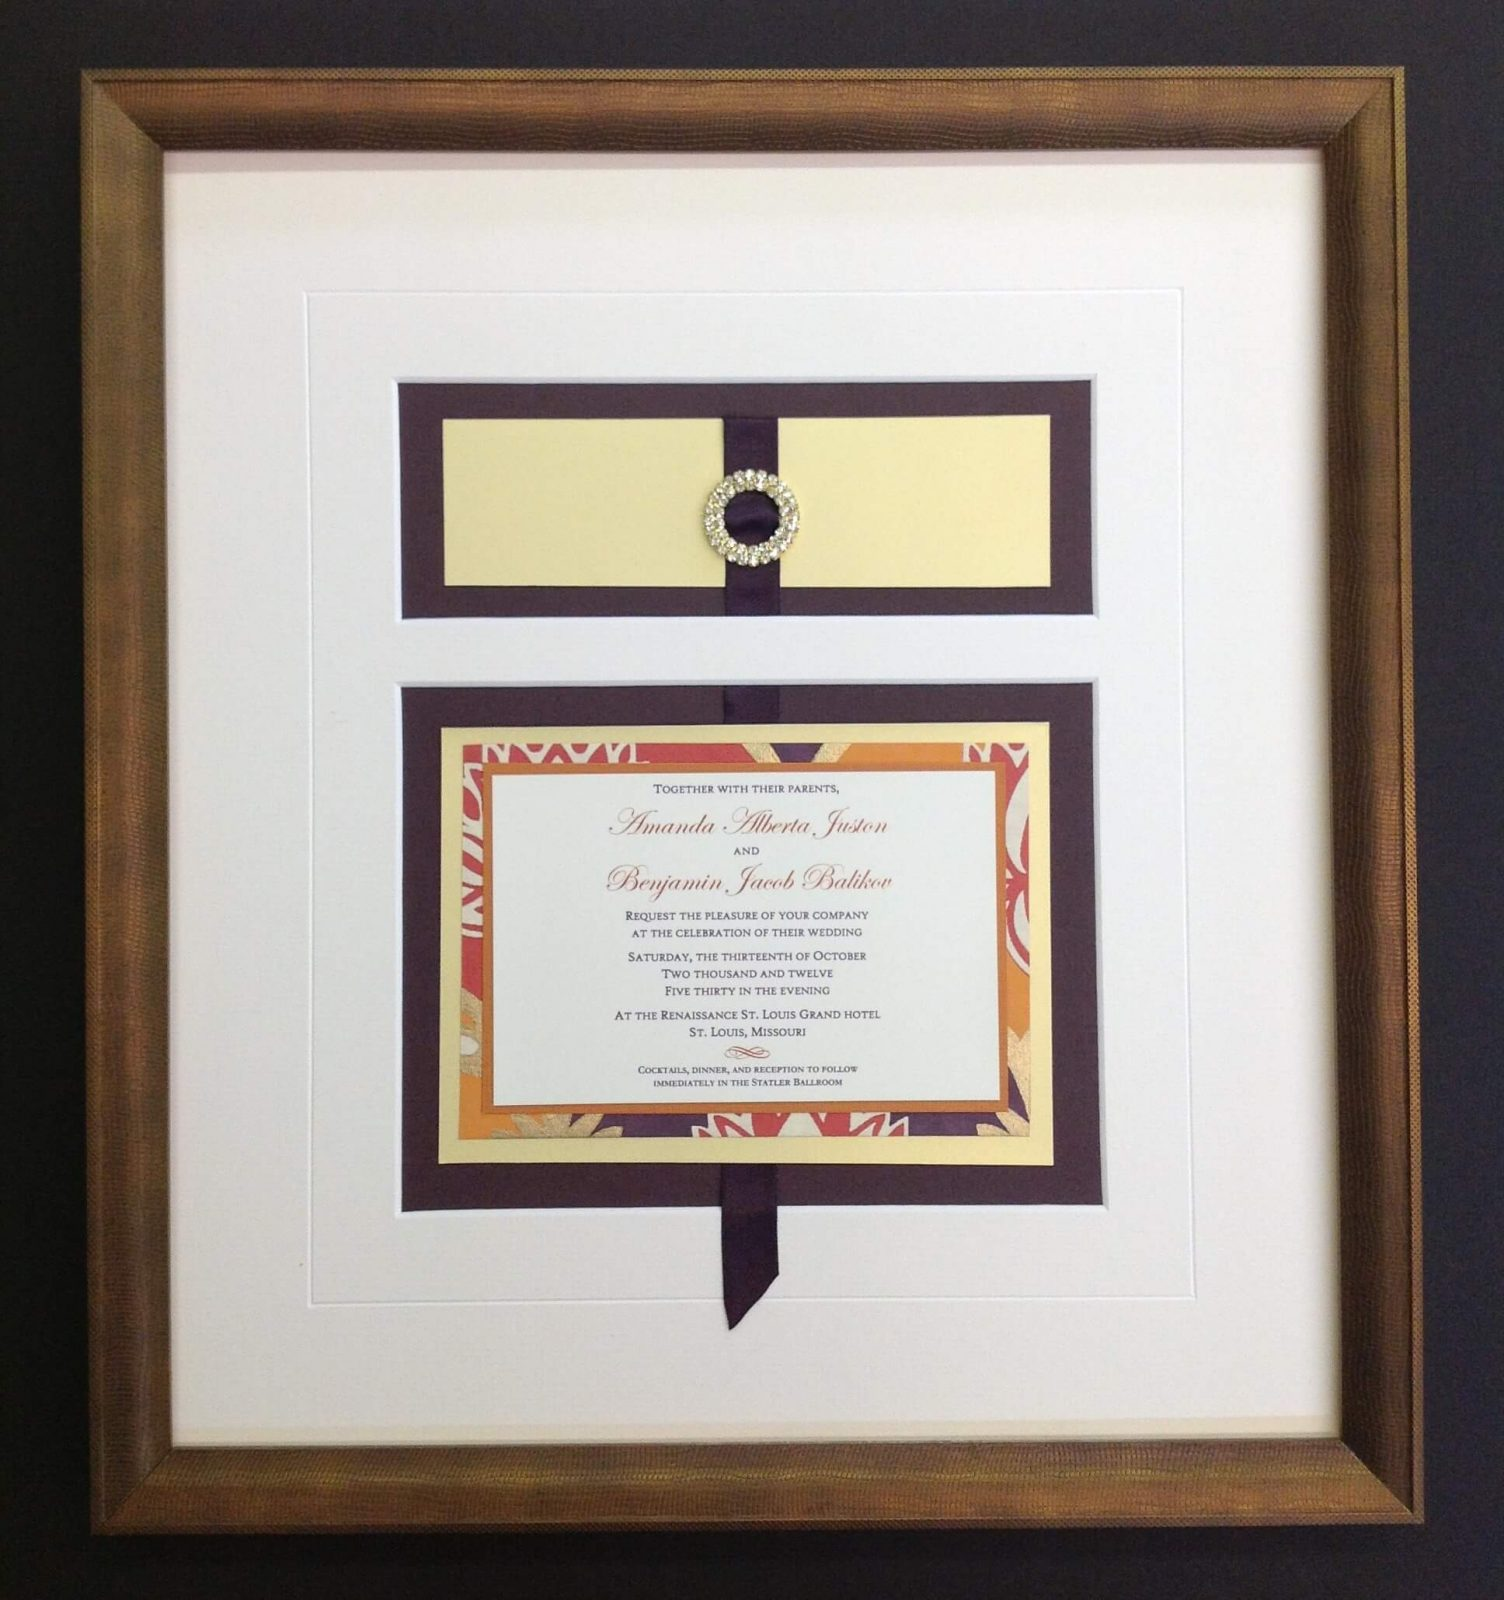 A wedding invitation framed and matted